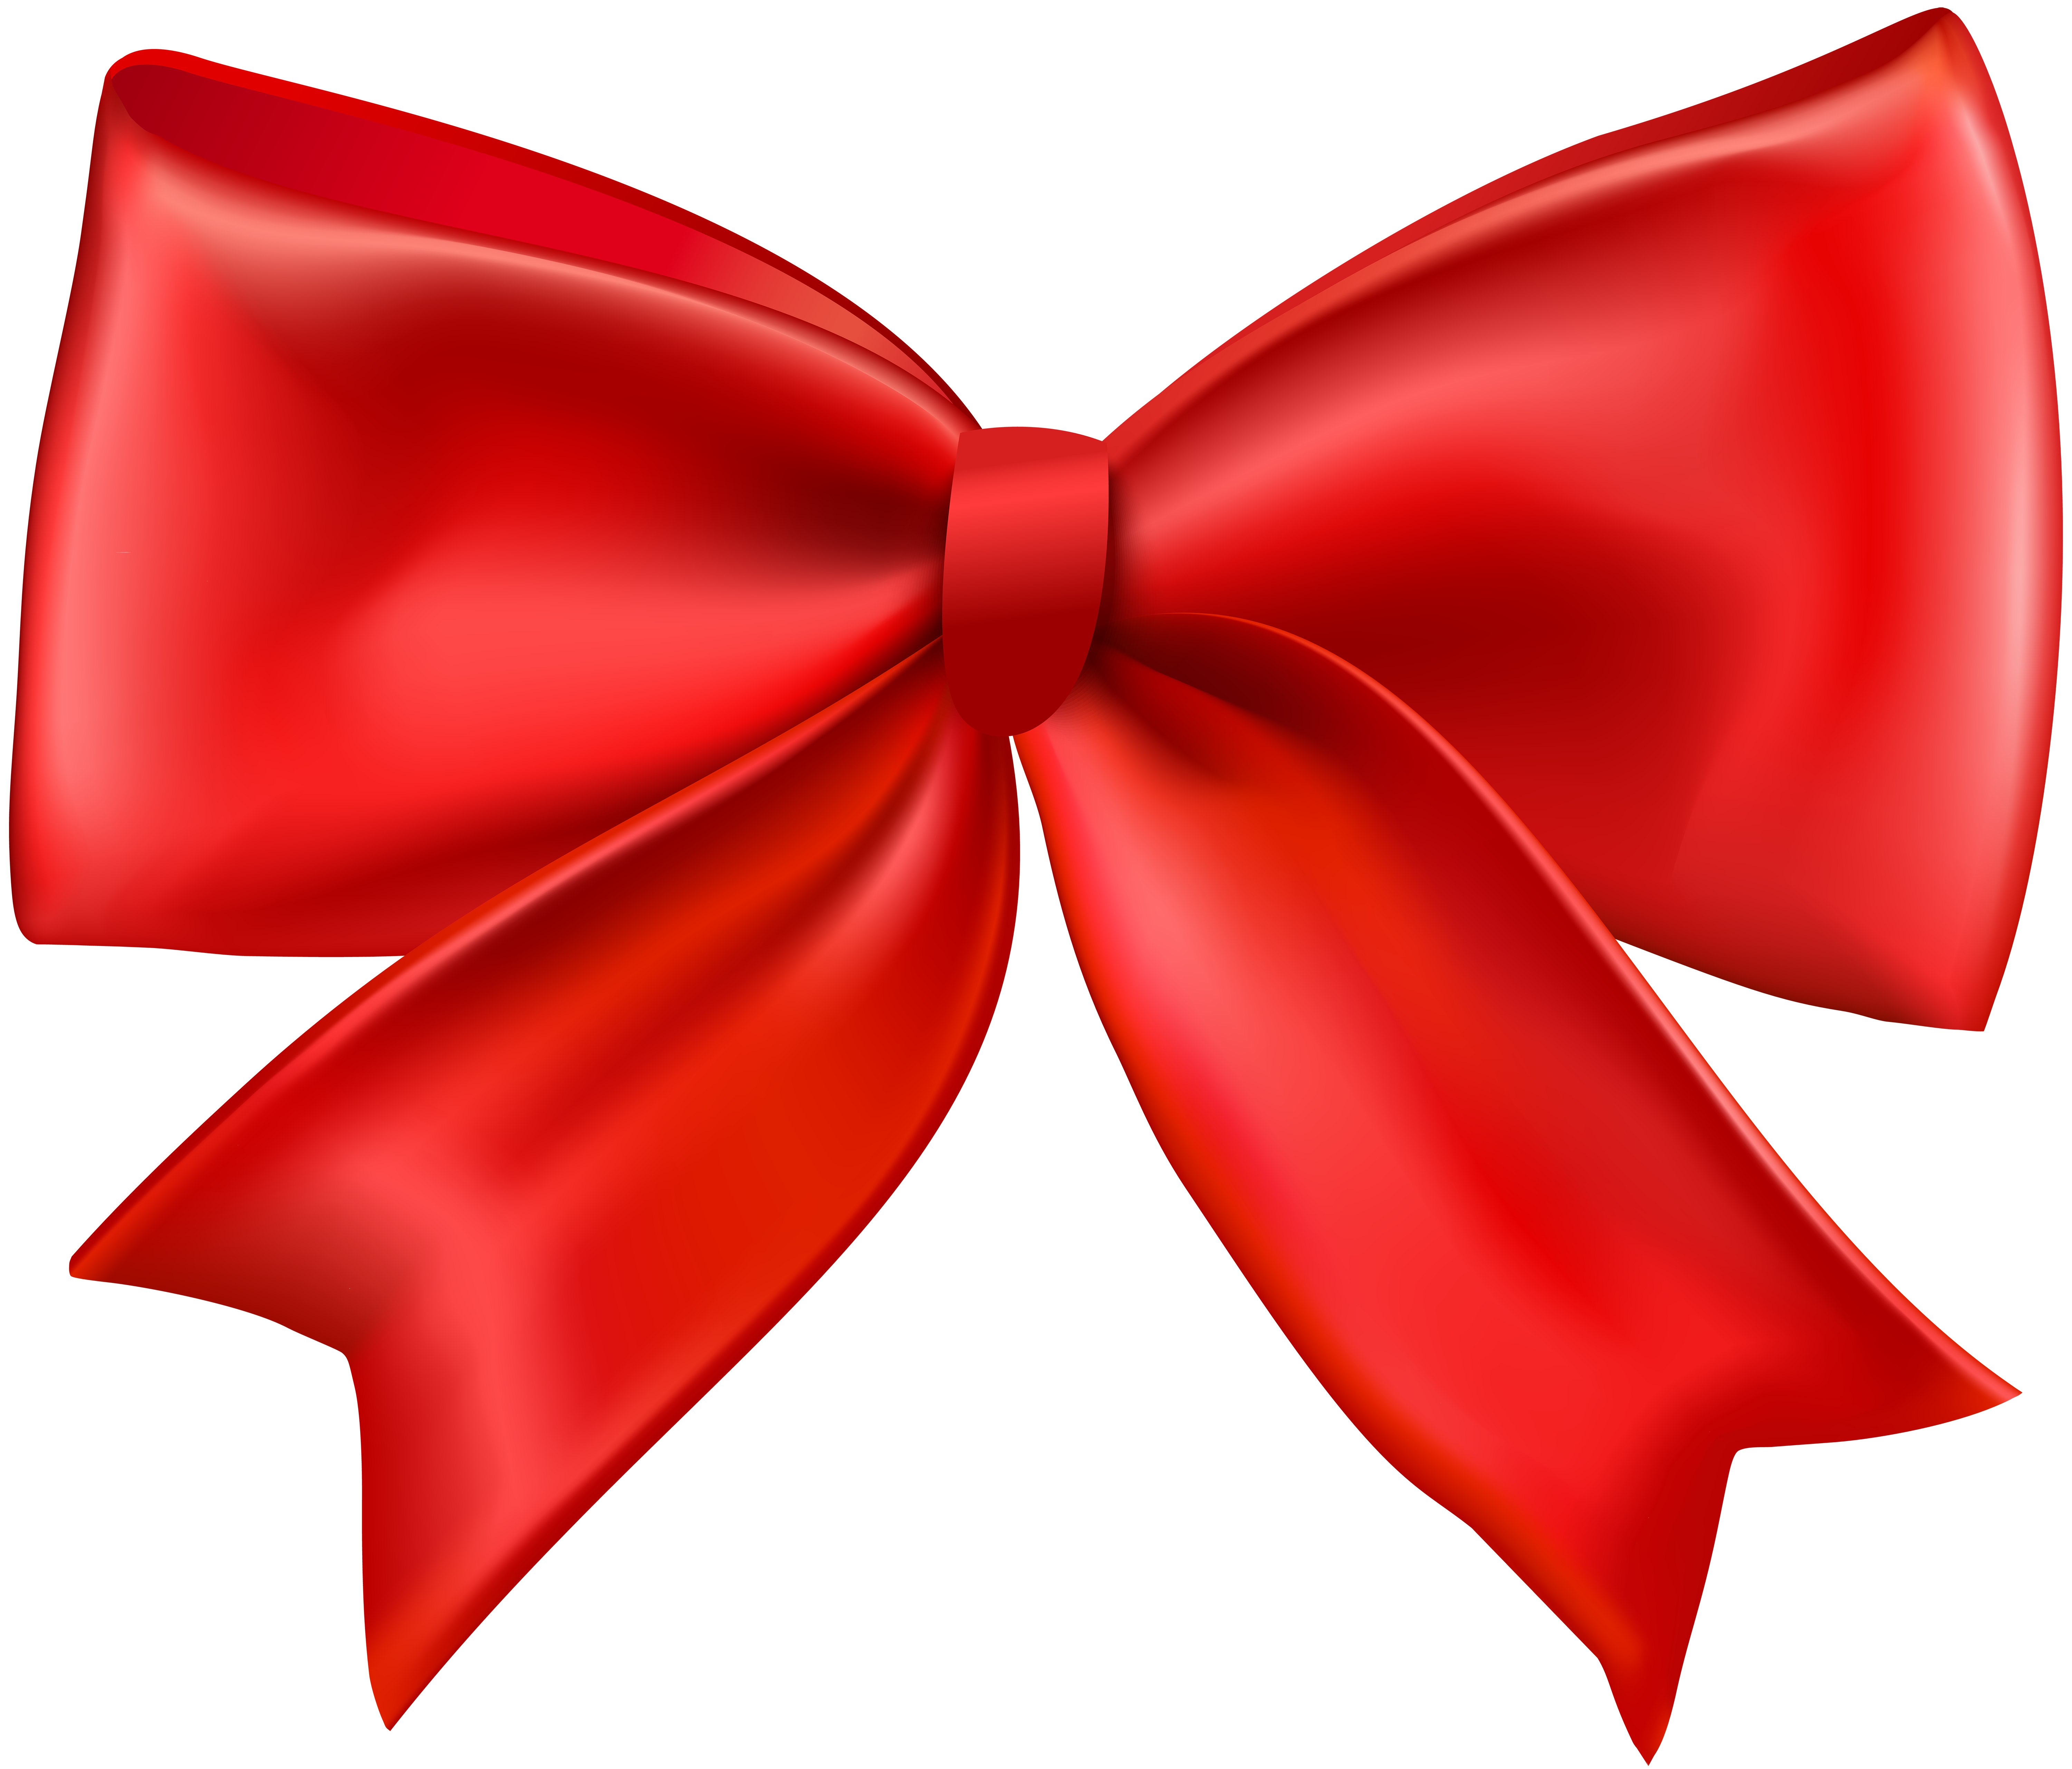 Ribbon png transparent. Red bow clip art